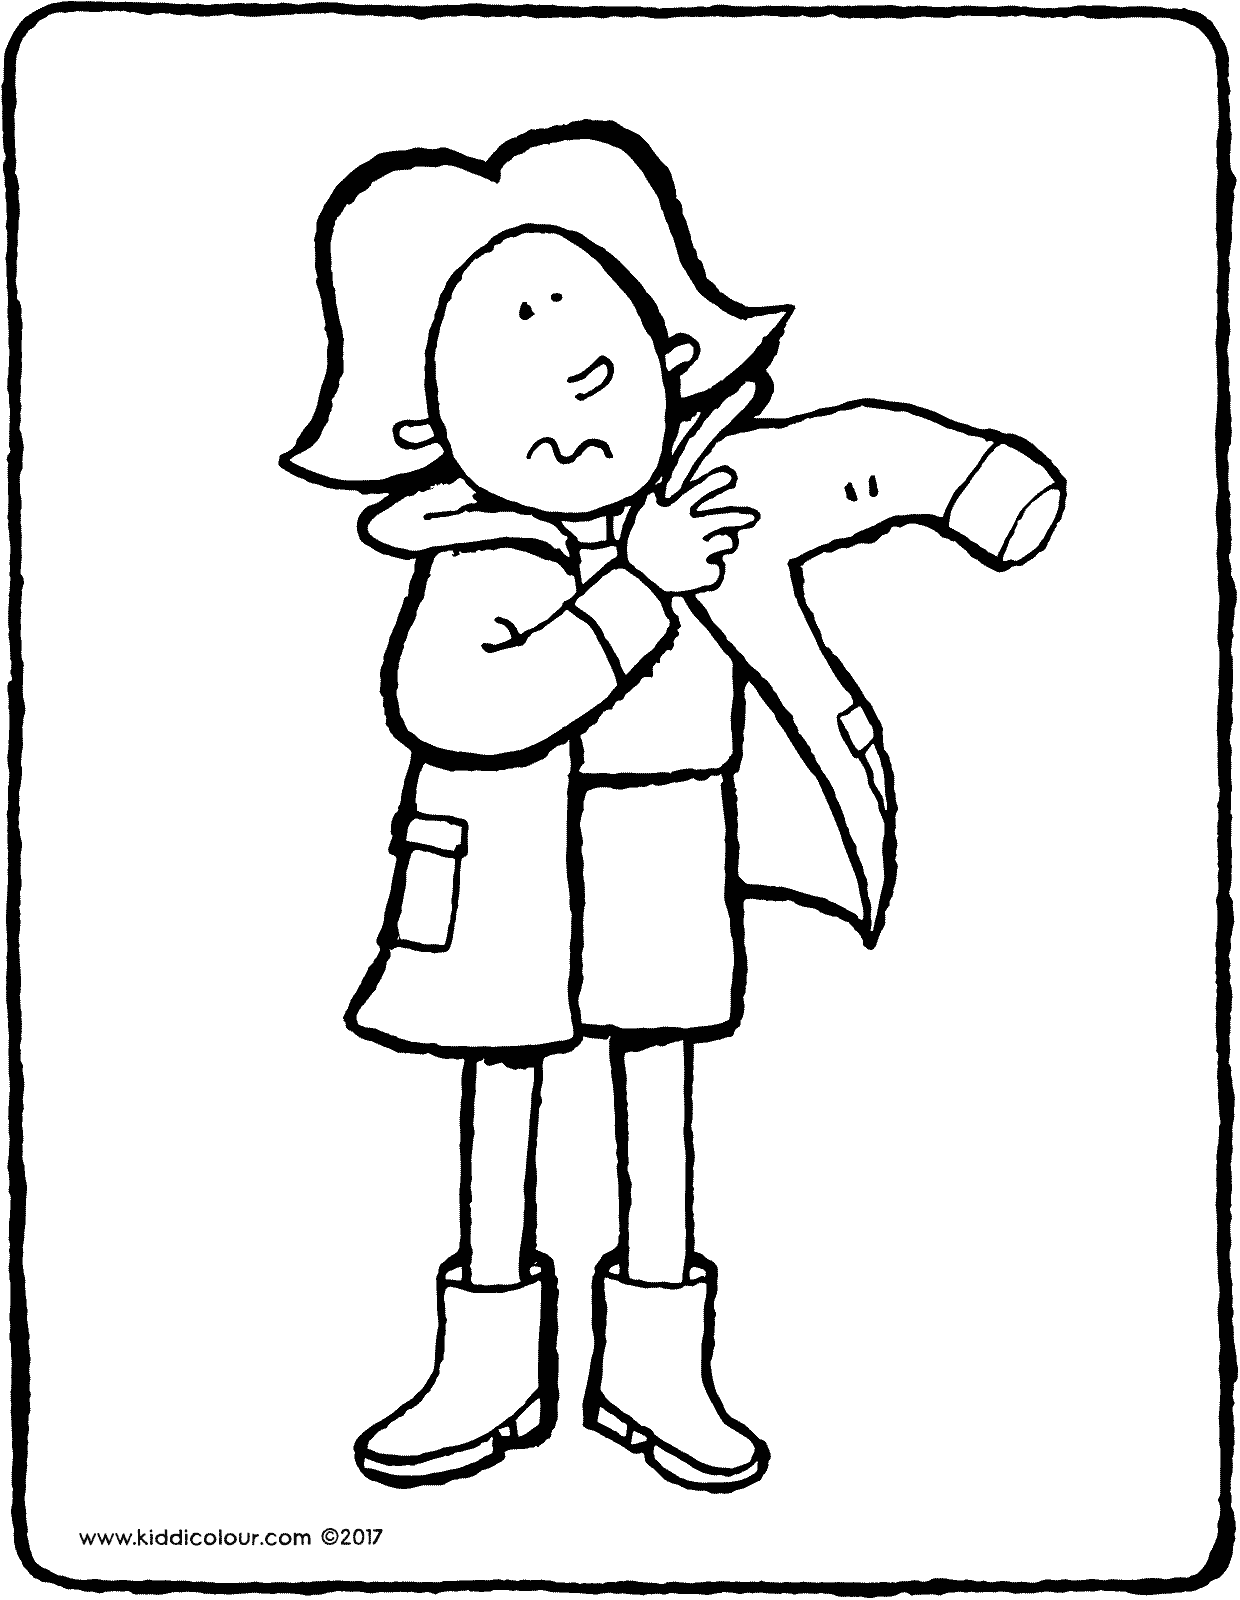 Emma putting on coat colouring page drawing picture 01V